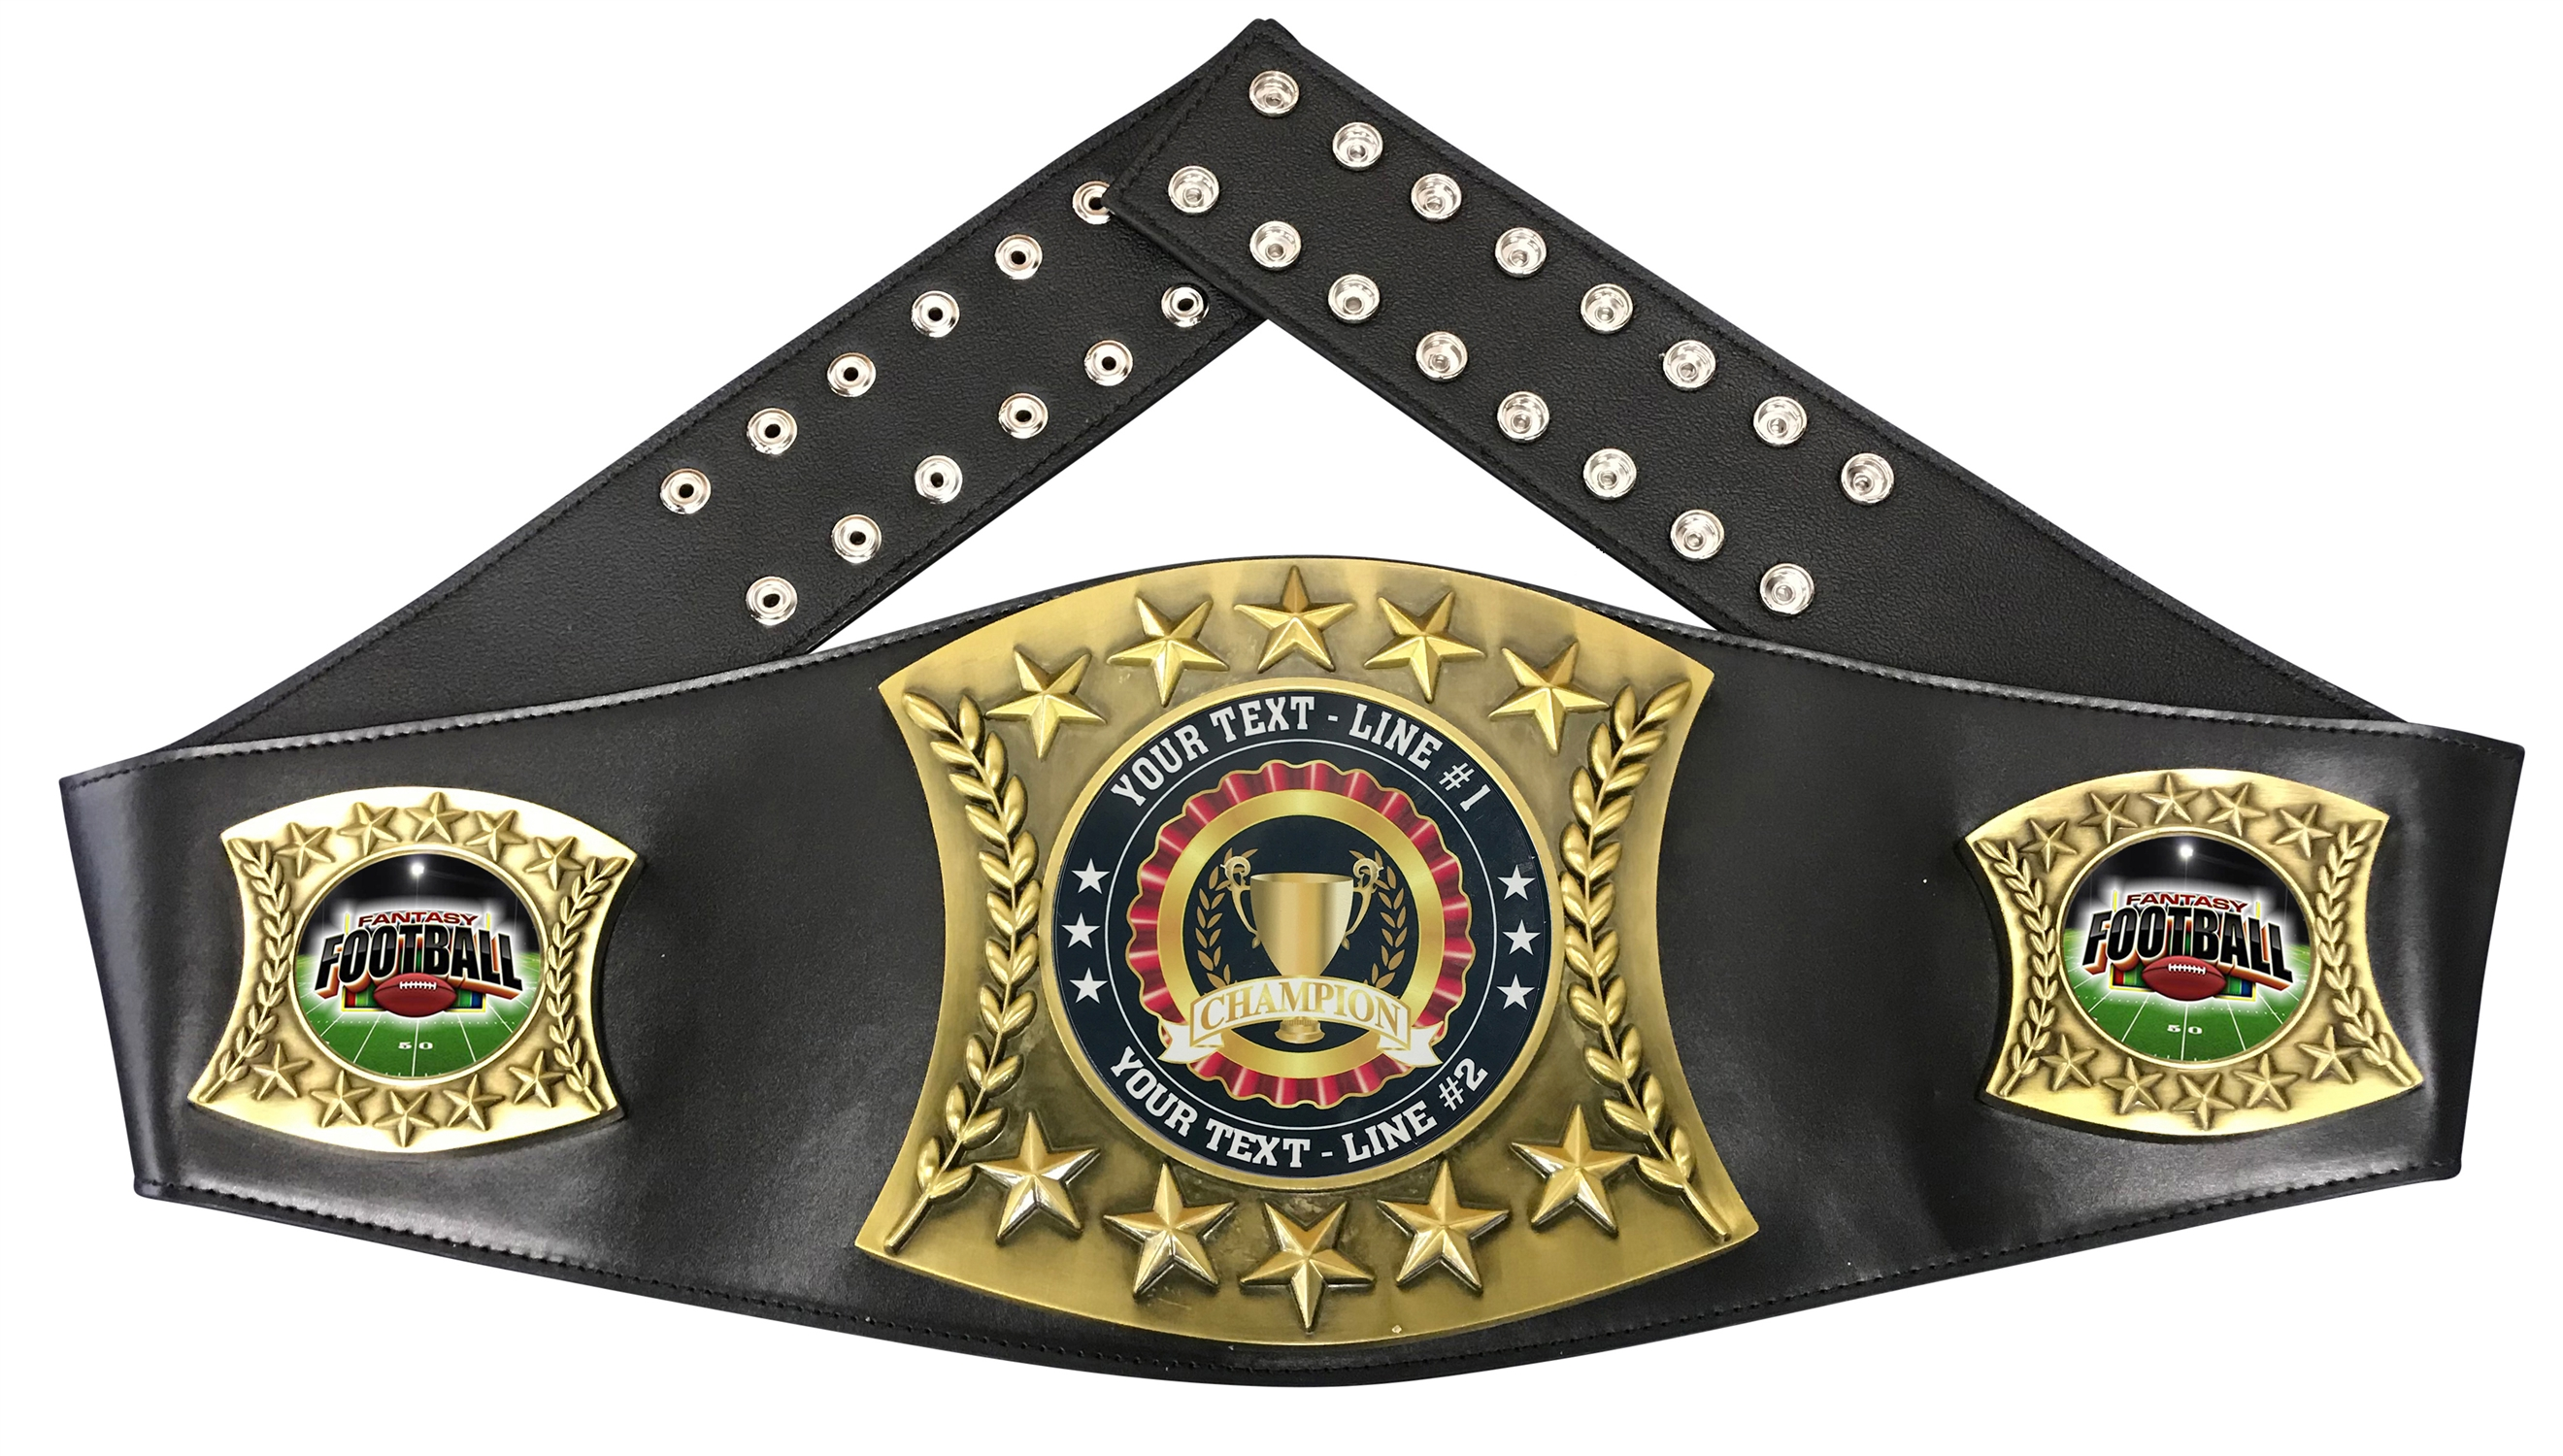 Fantasy Football Personalized Championship Belt